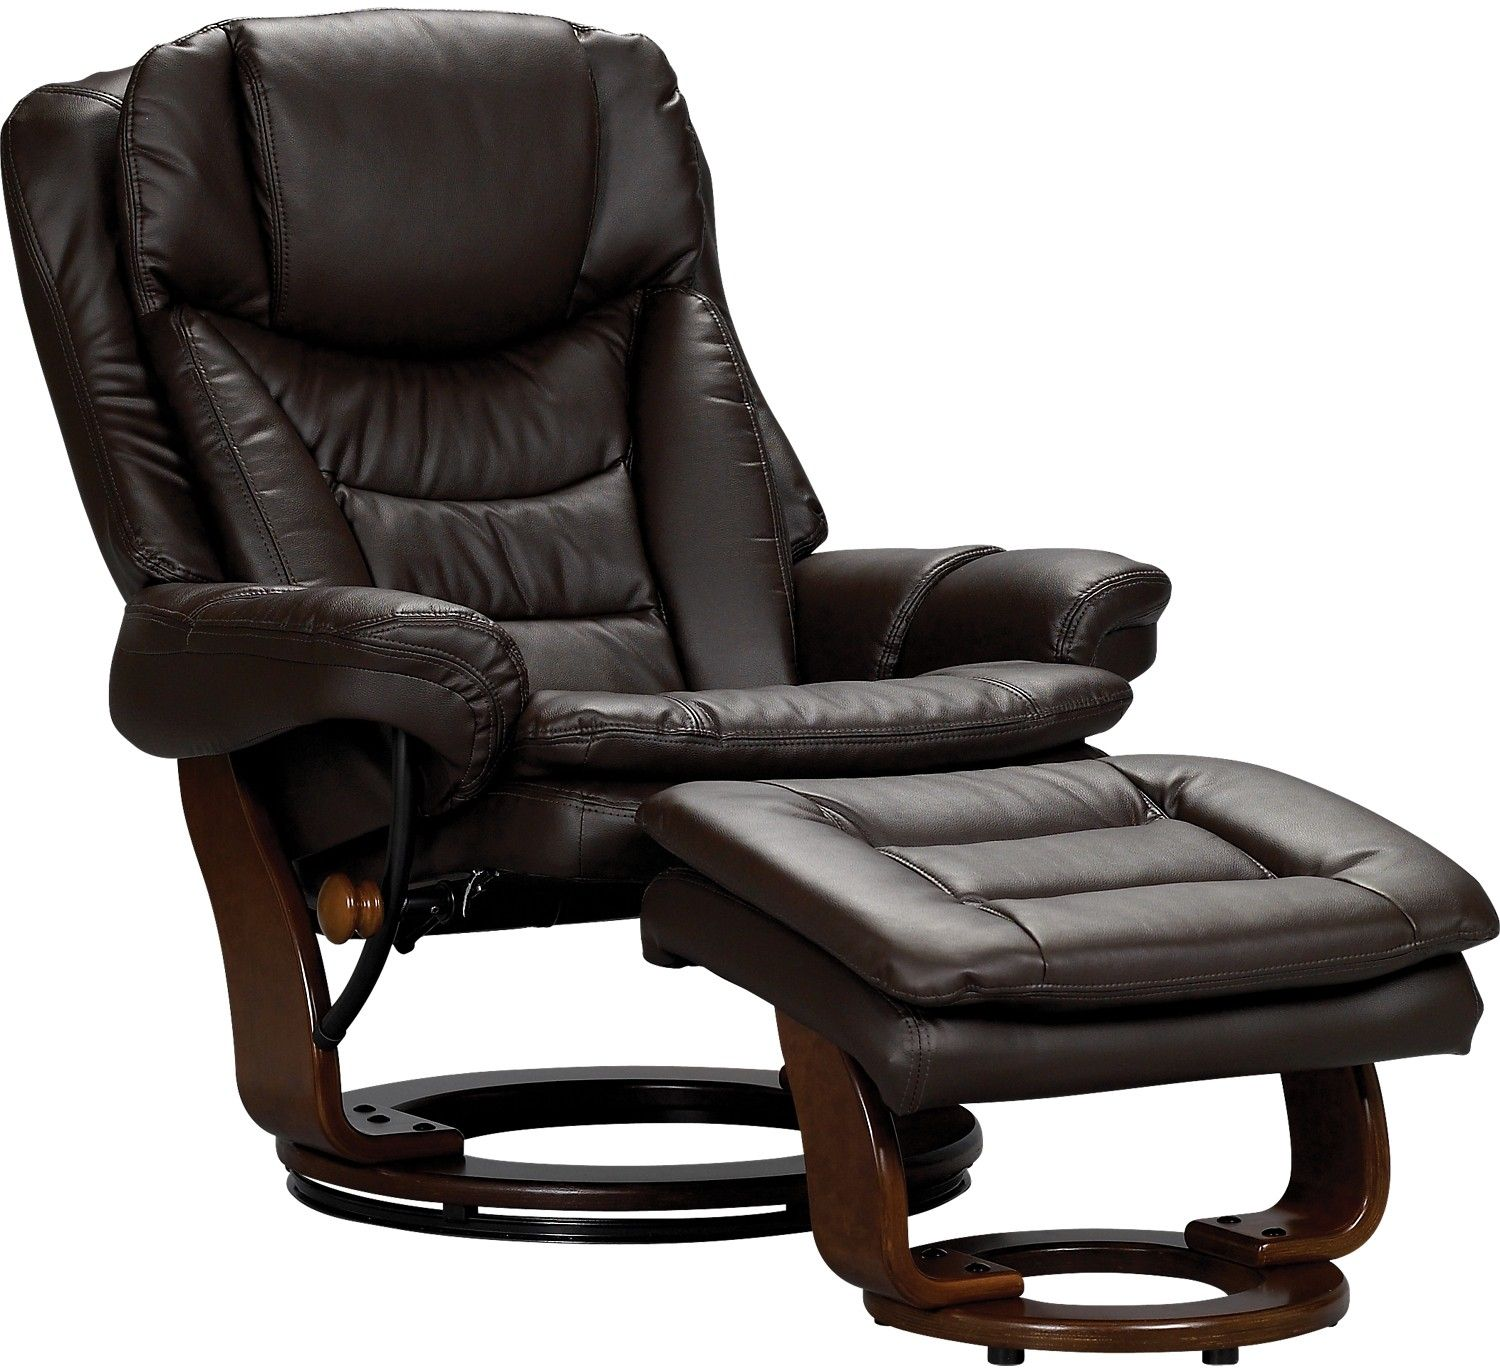 All Leather Recliner Chairs Glossy White Wood Outdoor Rocking Chair The Flynn Brown Is Luxurious In Both Comfort And